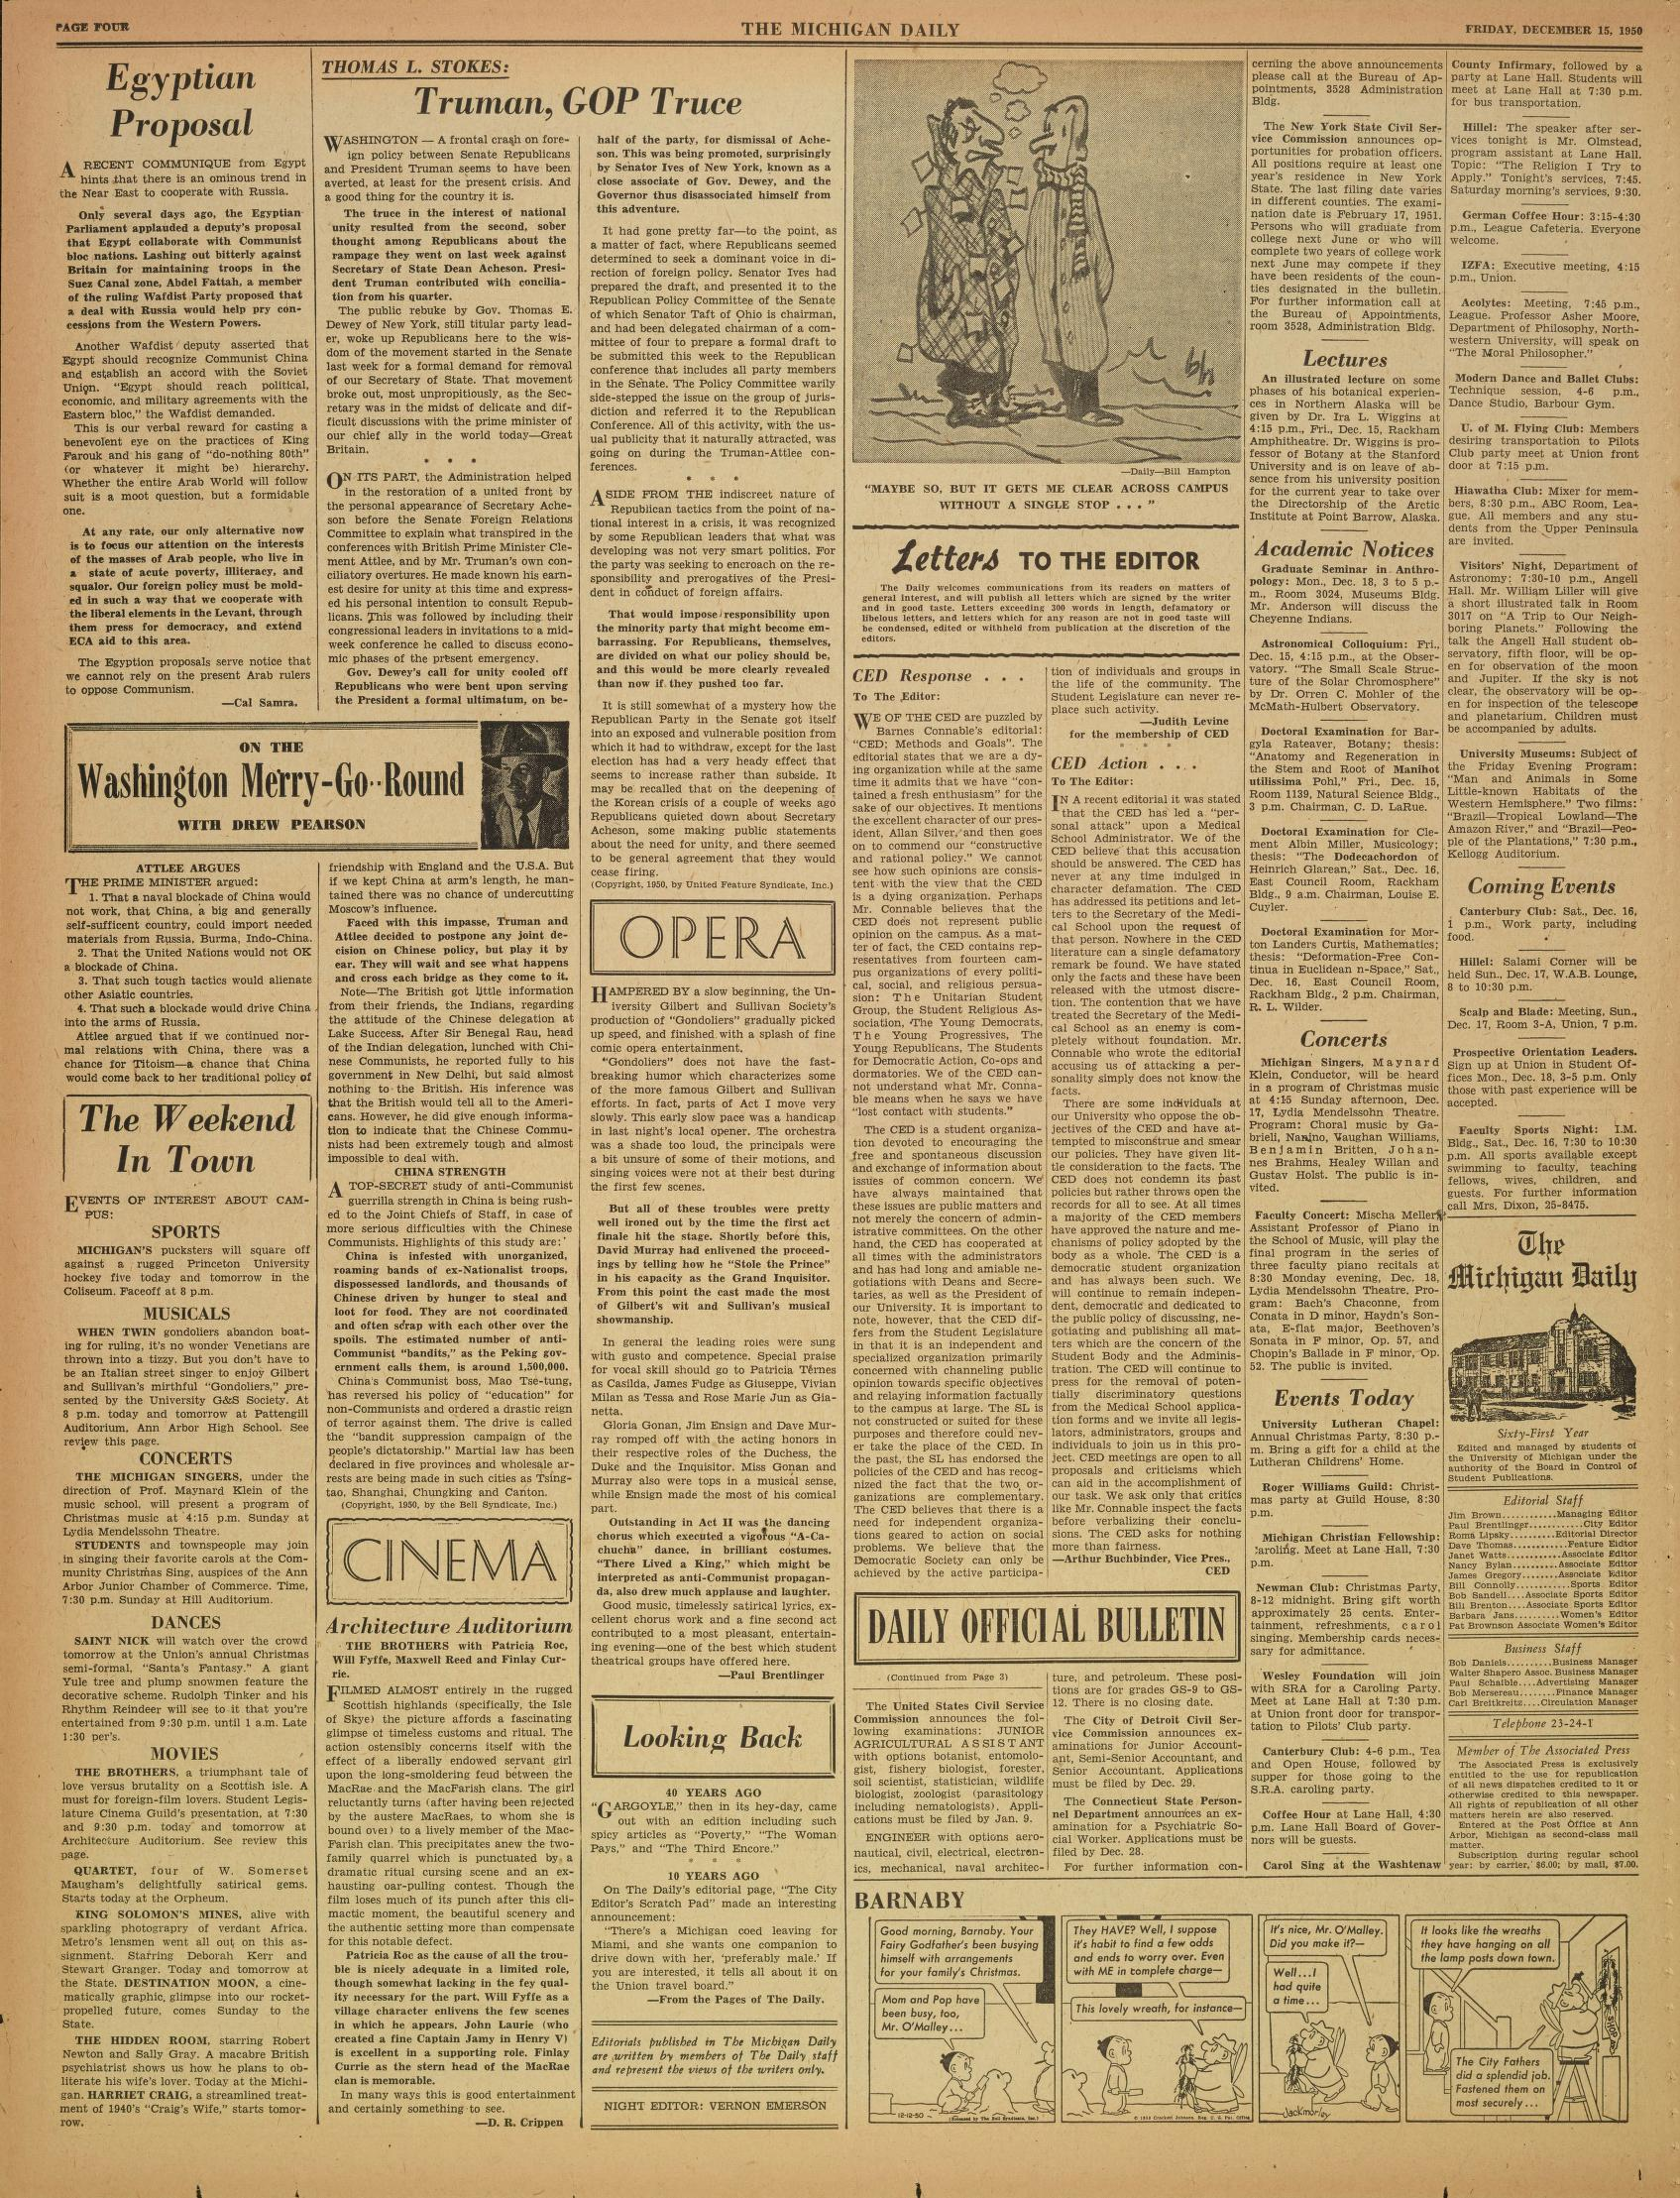 Michigan Daily Digital Archives - December 15, 1950 (vol  61, iss